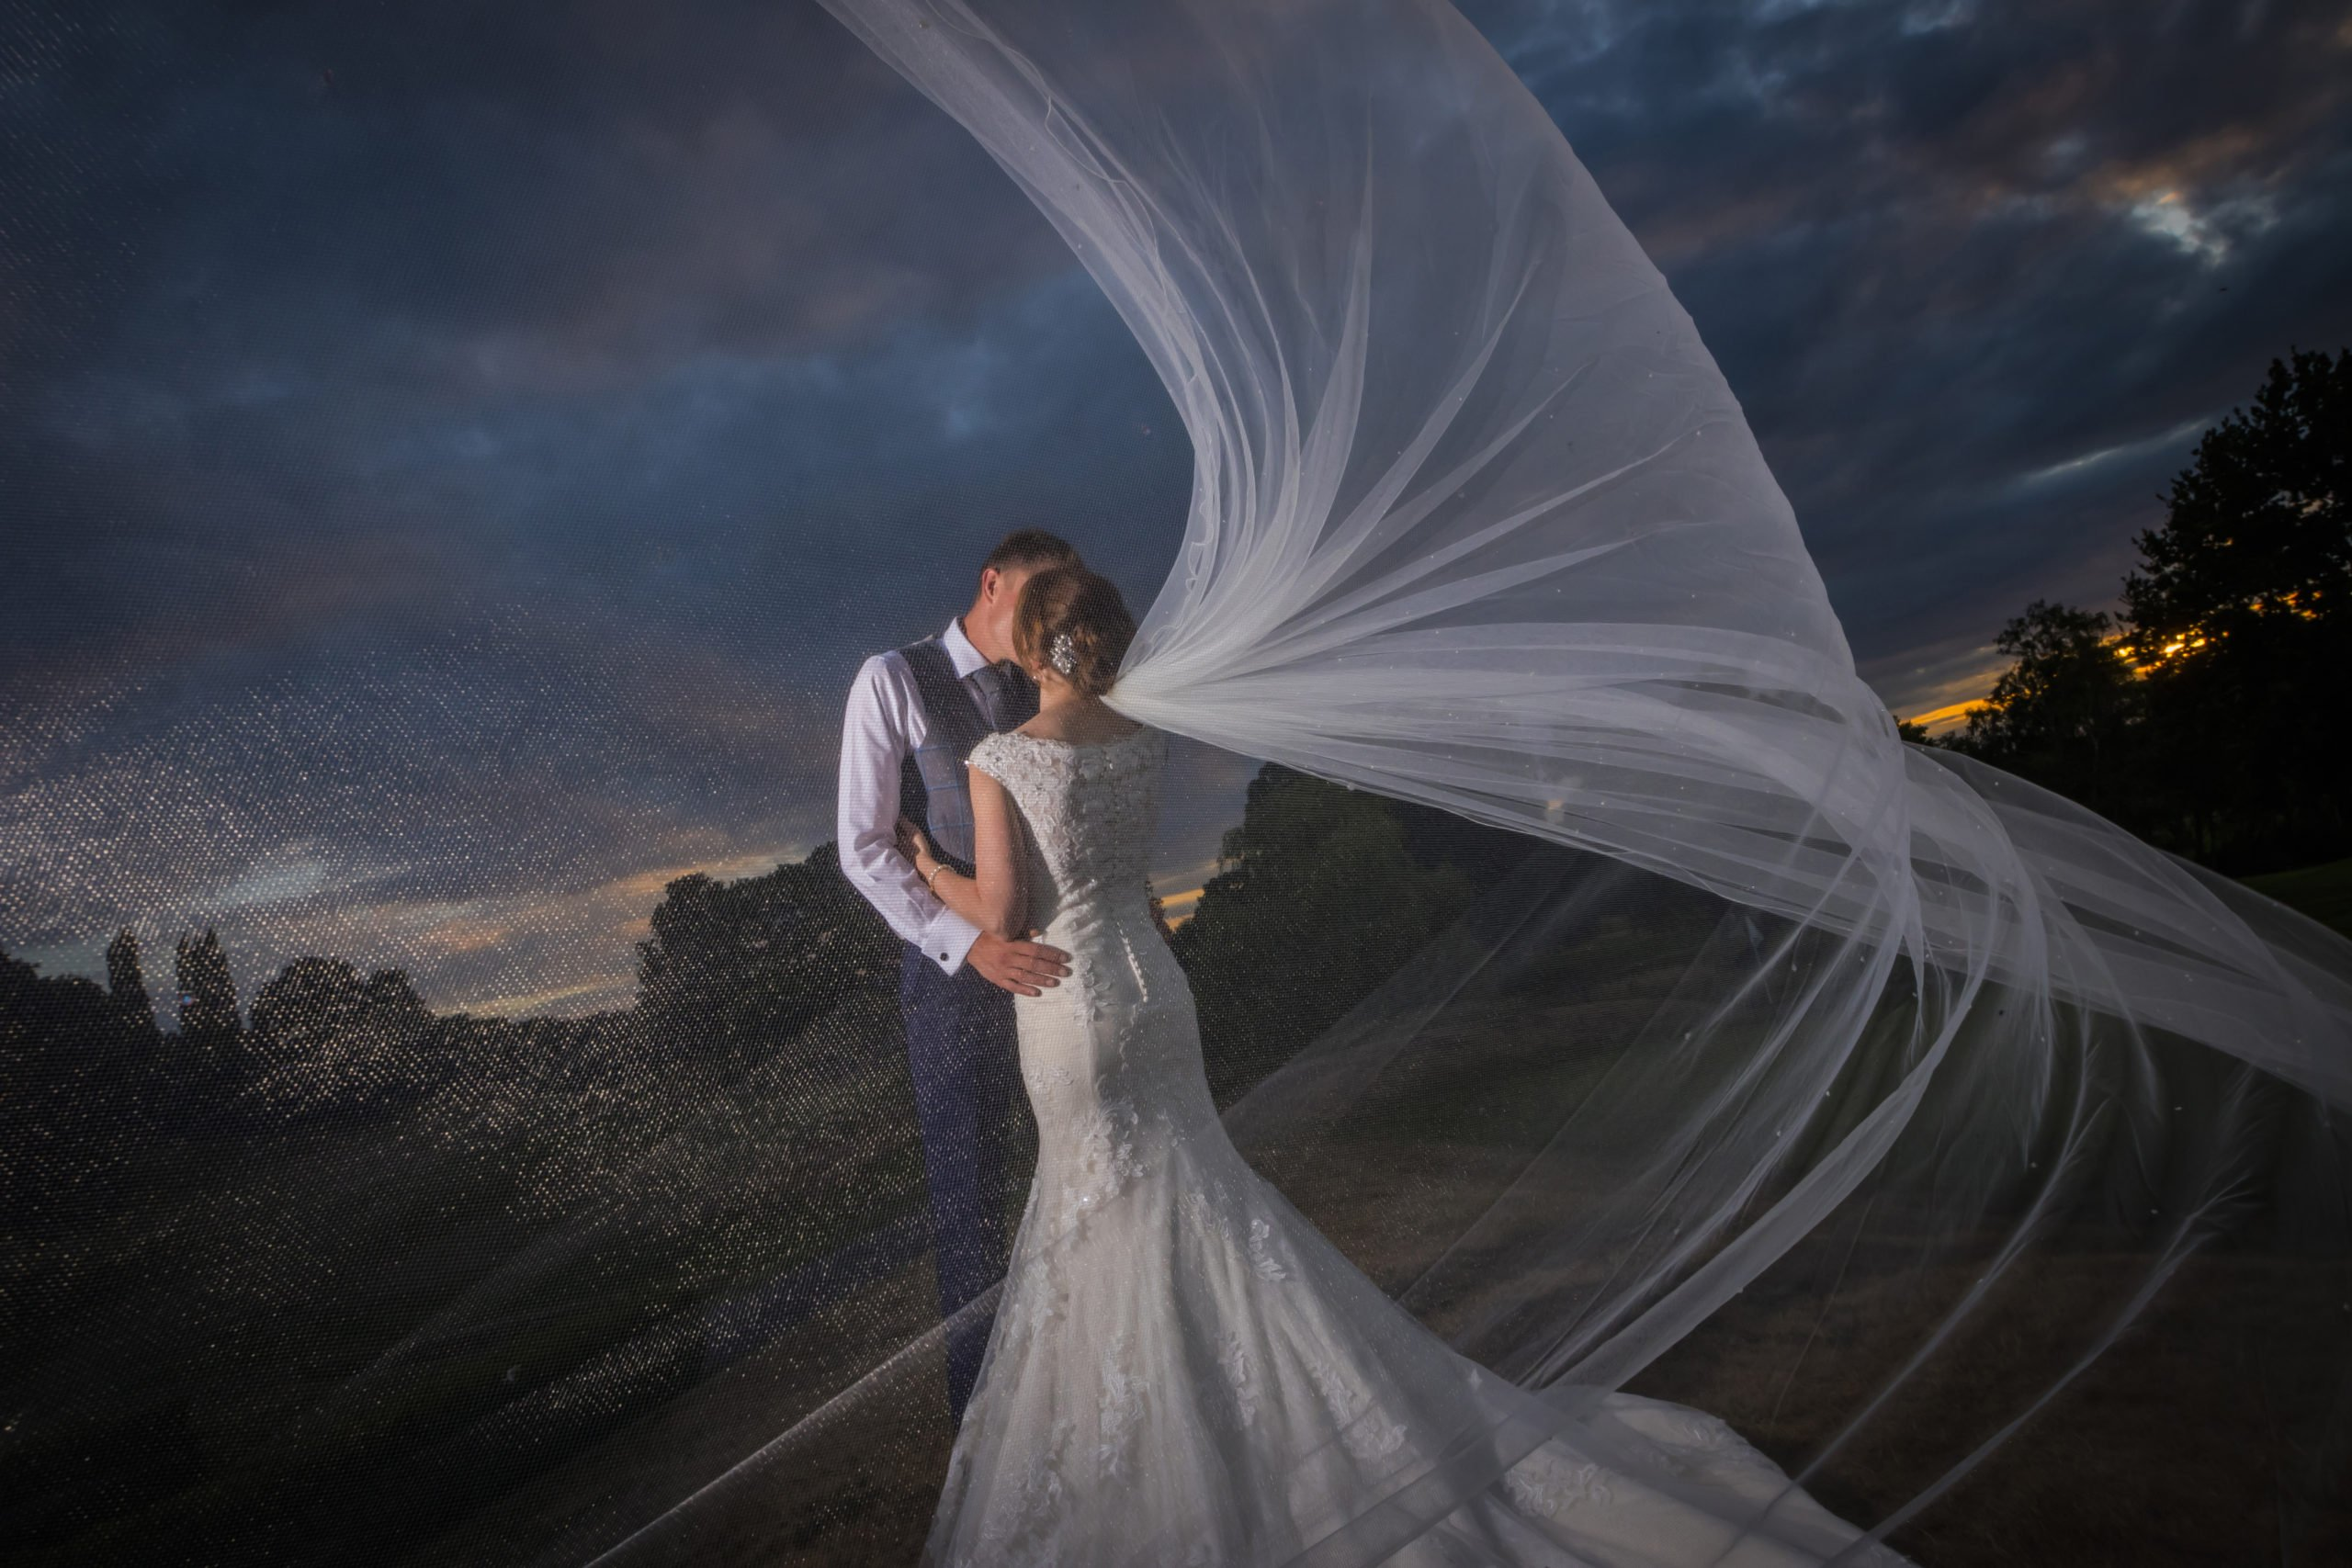 couple kissing outside at night with veil blowing